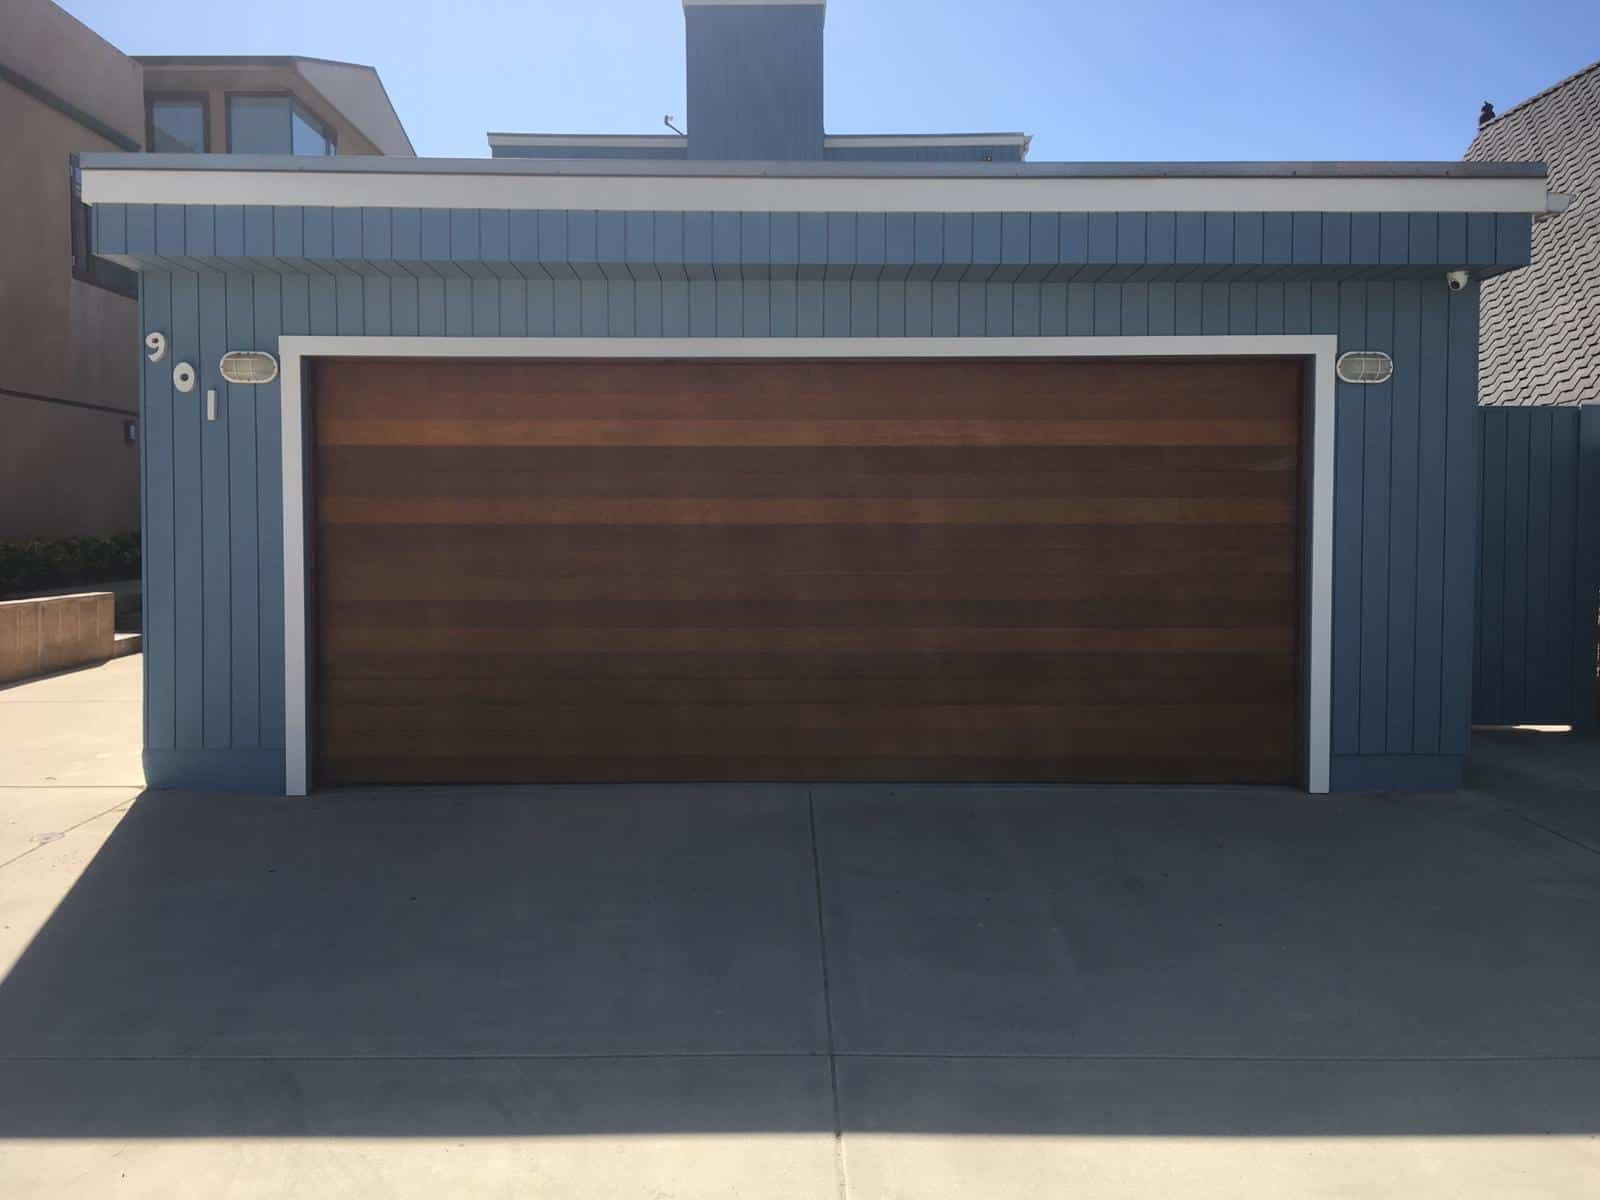 Playa Del Rey CA Garage Door Repair & Replacement